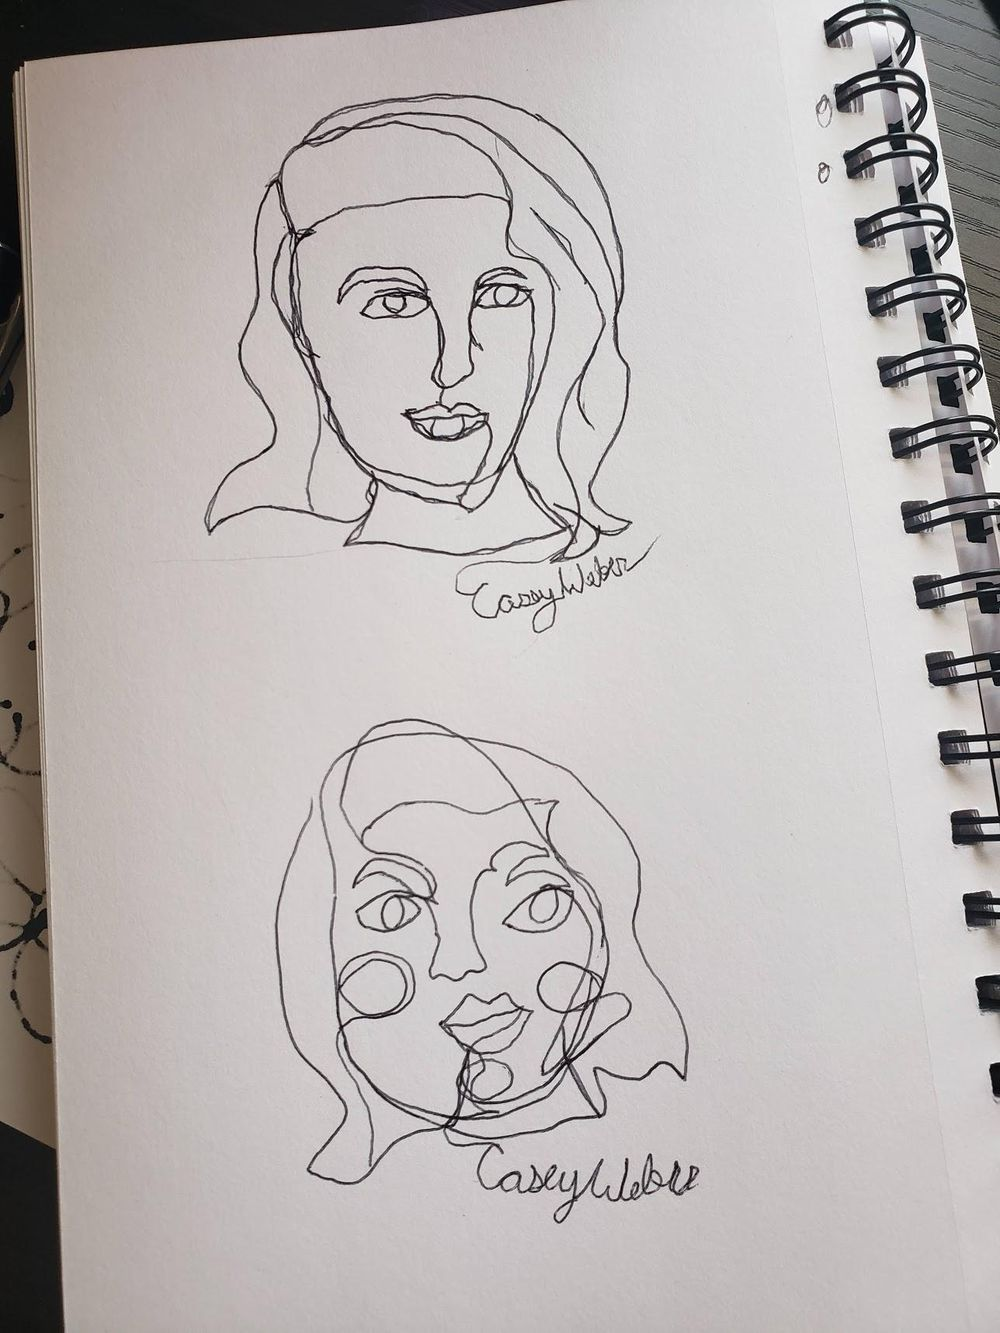 Contour Drawings - image 1 - student project